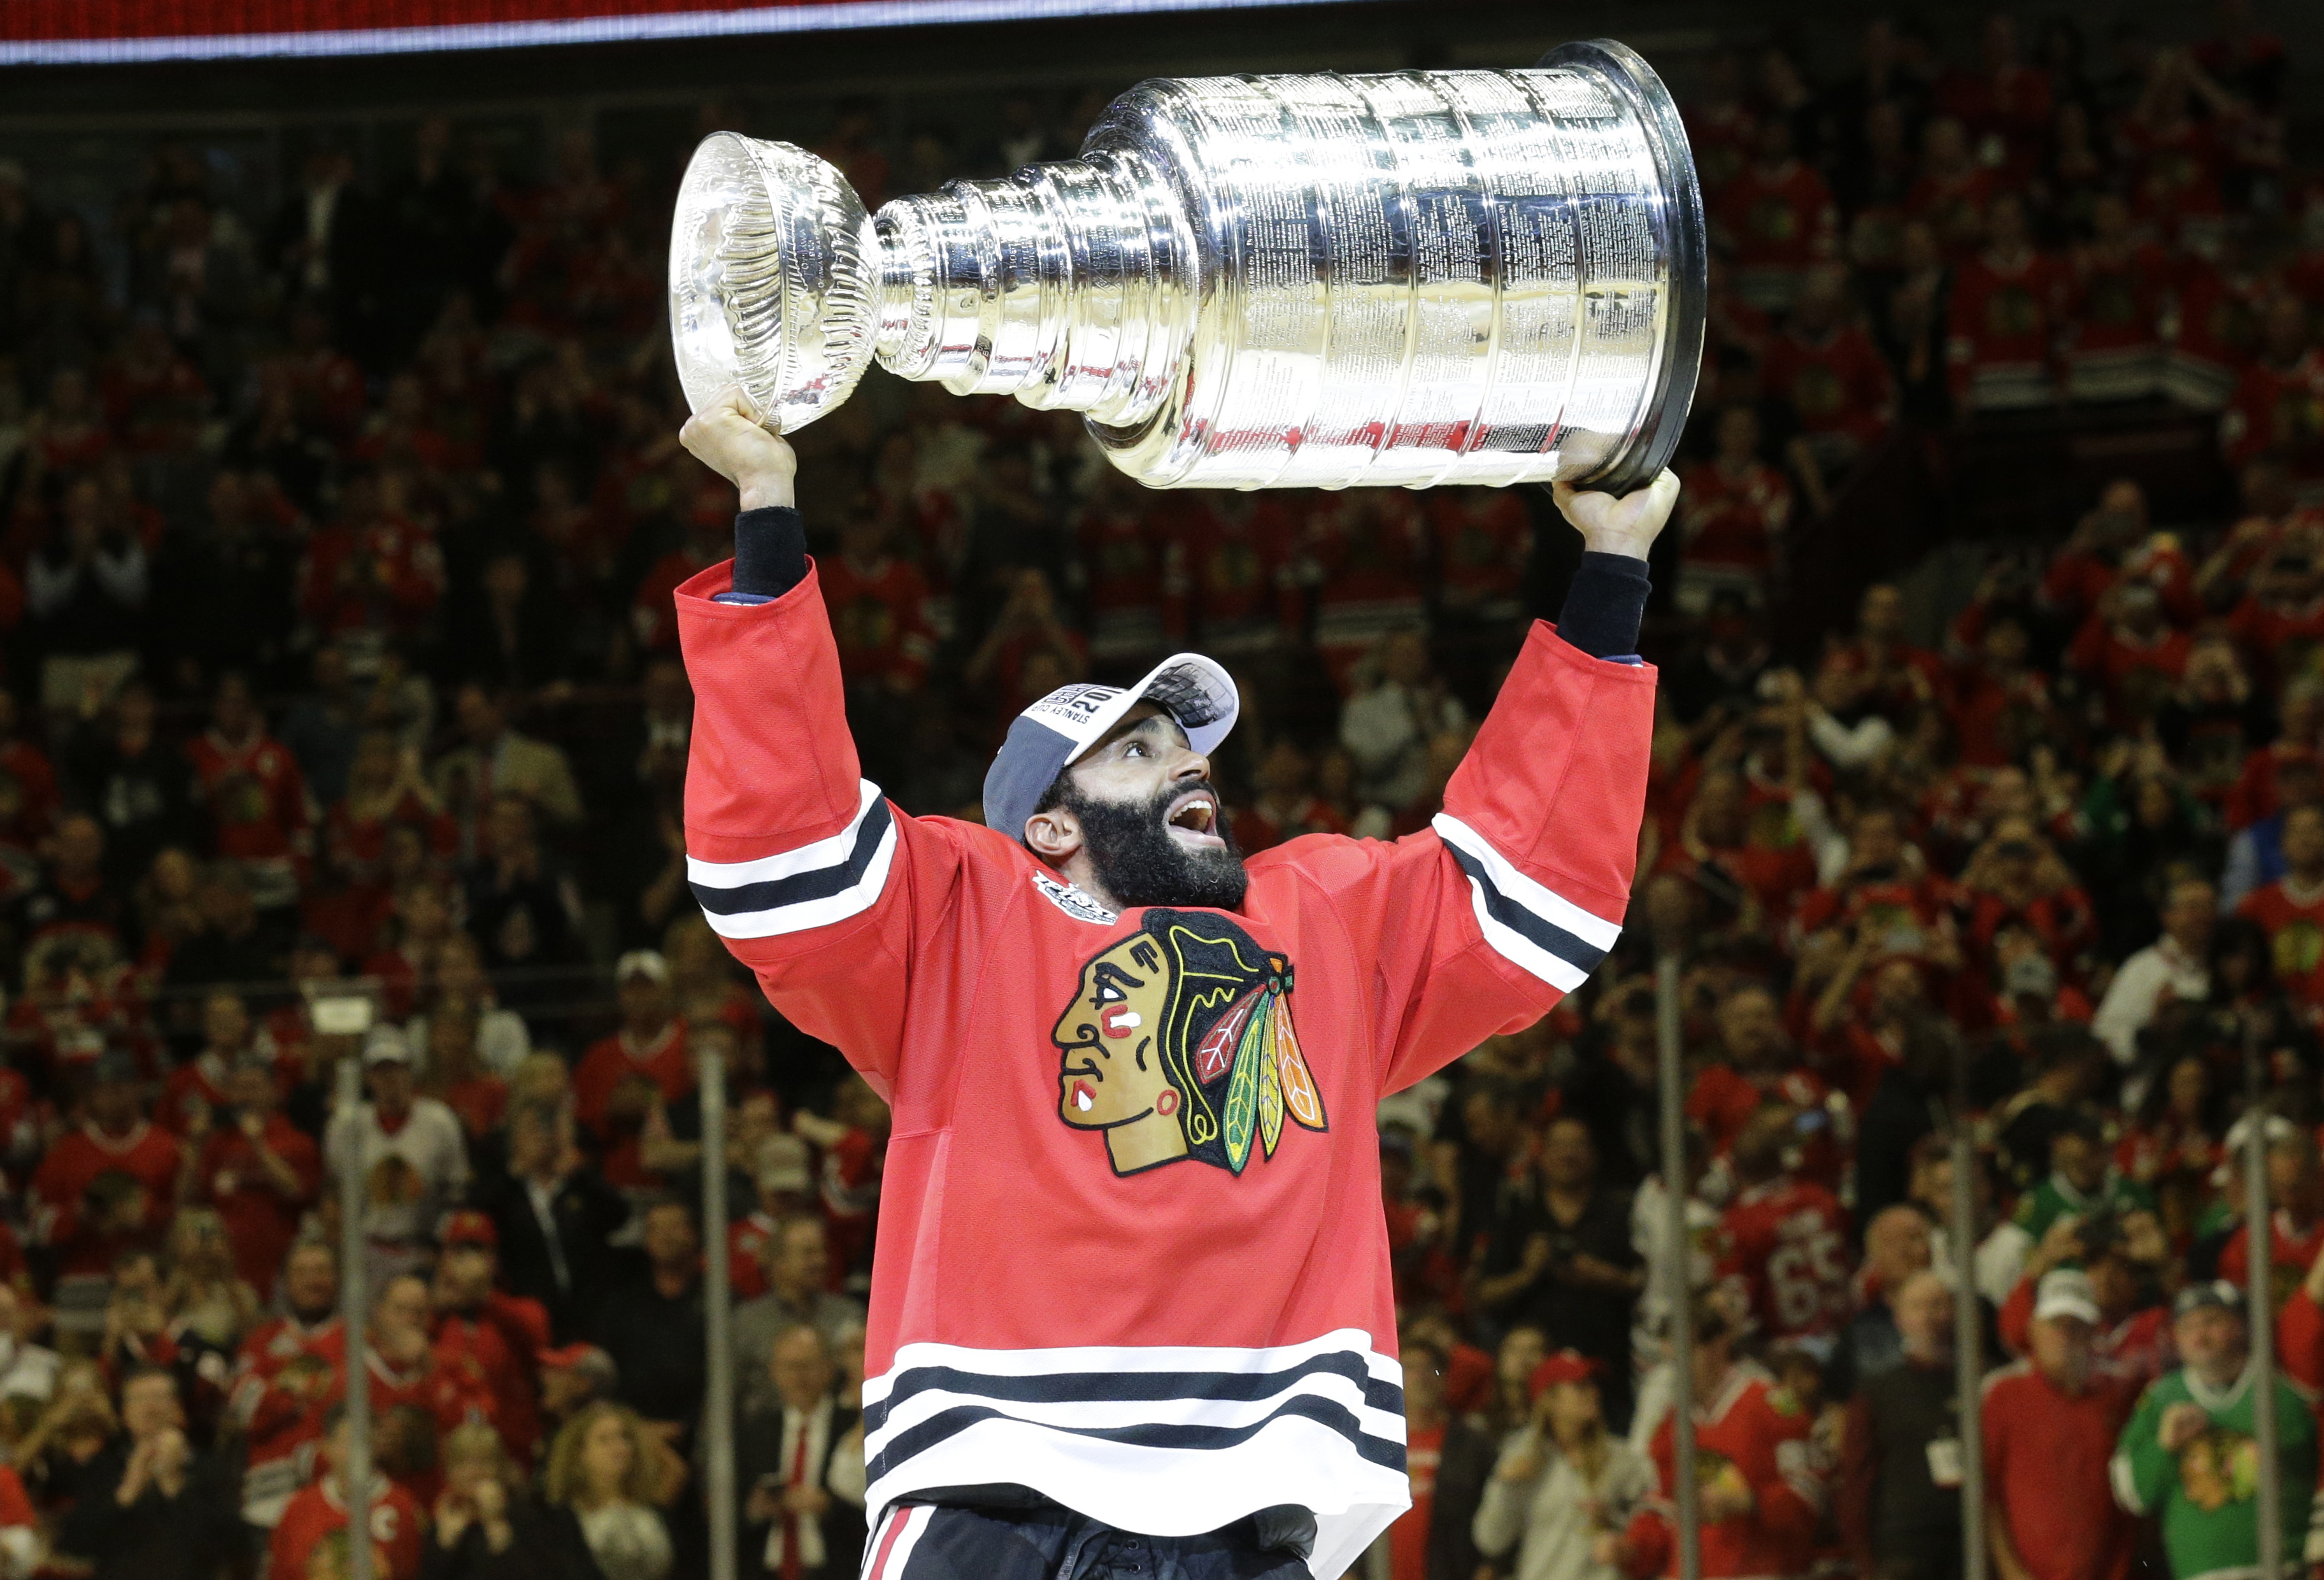 Chicago Blackhawks' Johnny Oduya, of Sweden, celebrates after defeating the Tampa Bay Lightning in Game 6 of the NHL hockey Stanley Cup Final series on Monday, June 15, 2015, in Chicago. The Blackhawks defeated the Lightning 2-0 to win the series 4-2. (